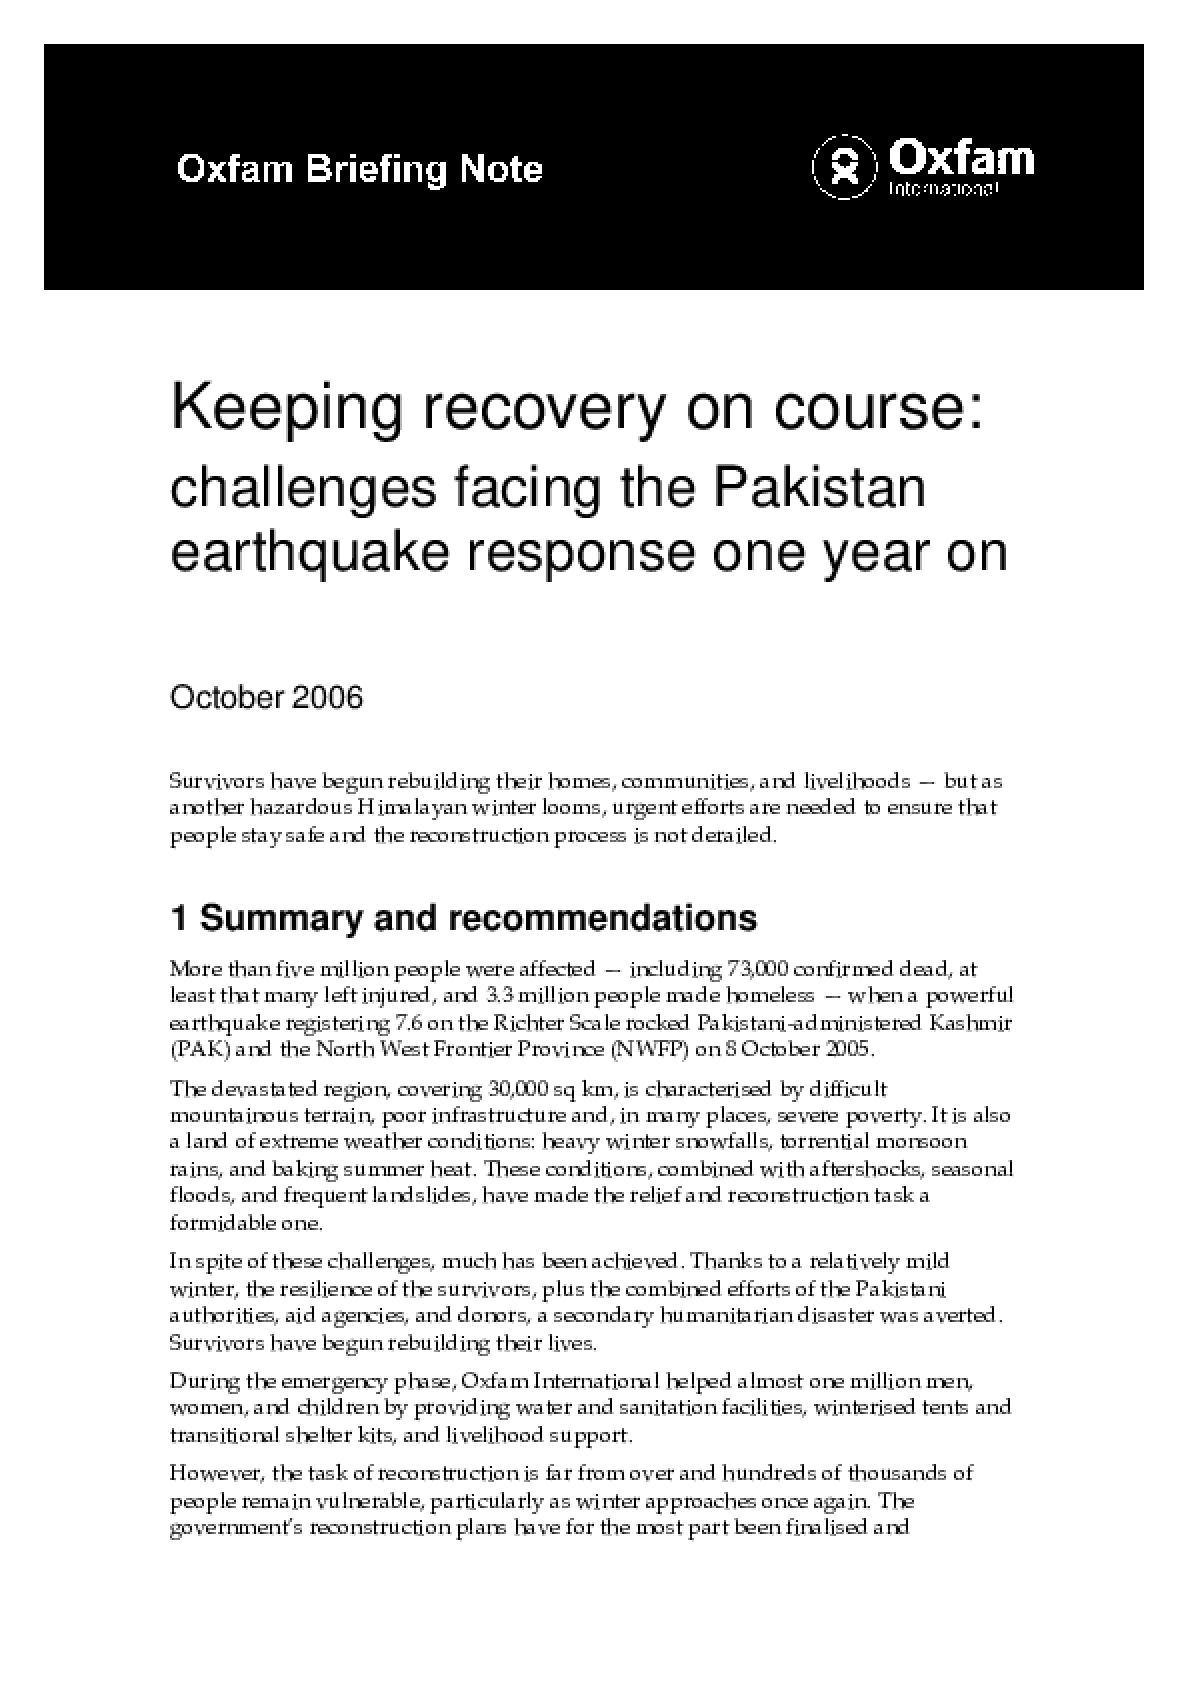 Keeping Recovery on Course: Challenges facing the Pakistan earthquake response one year on